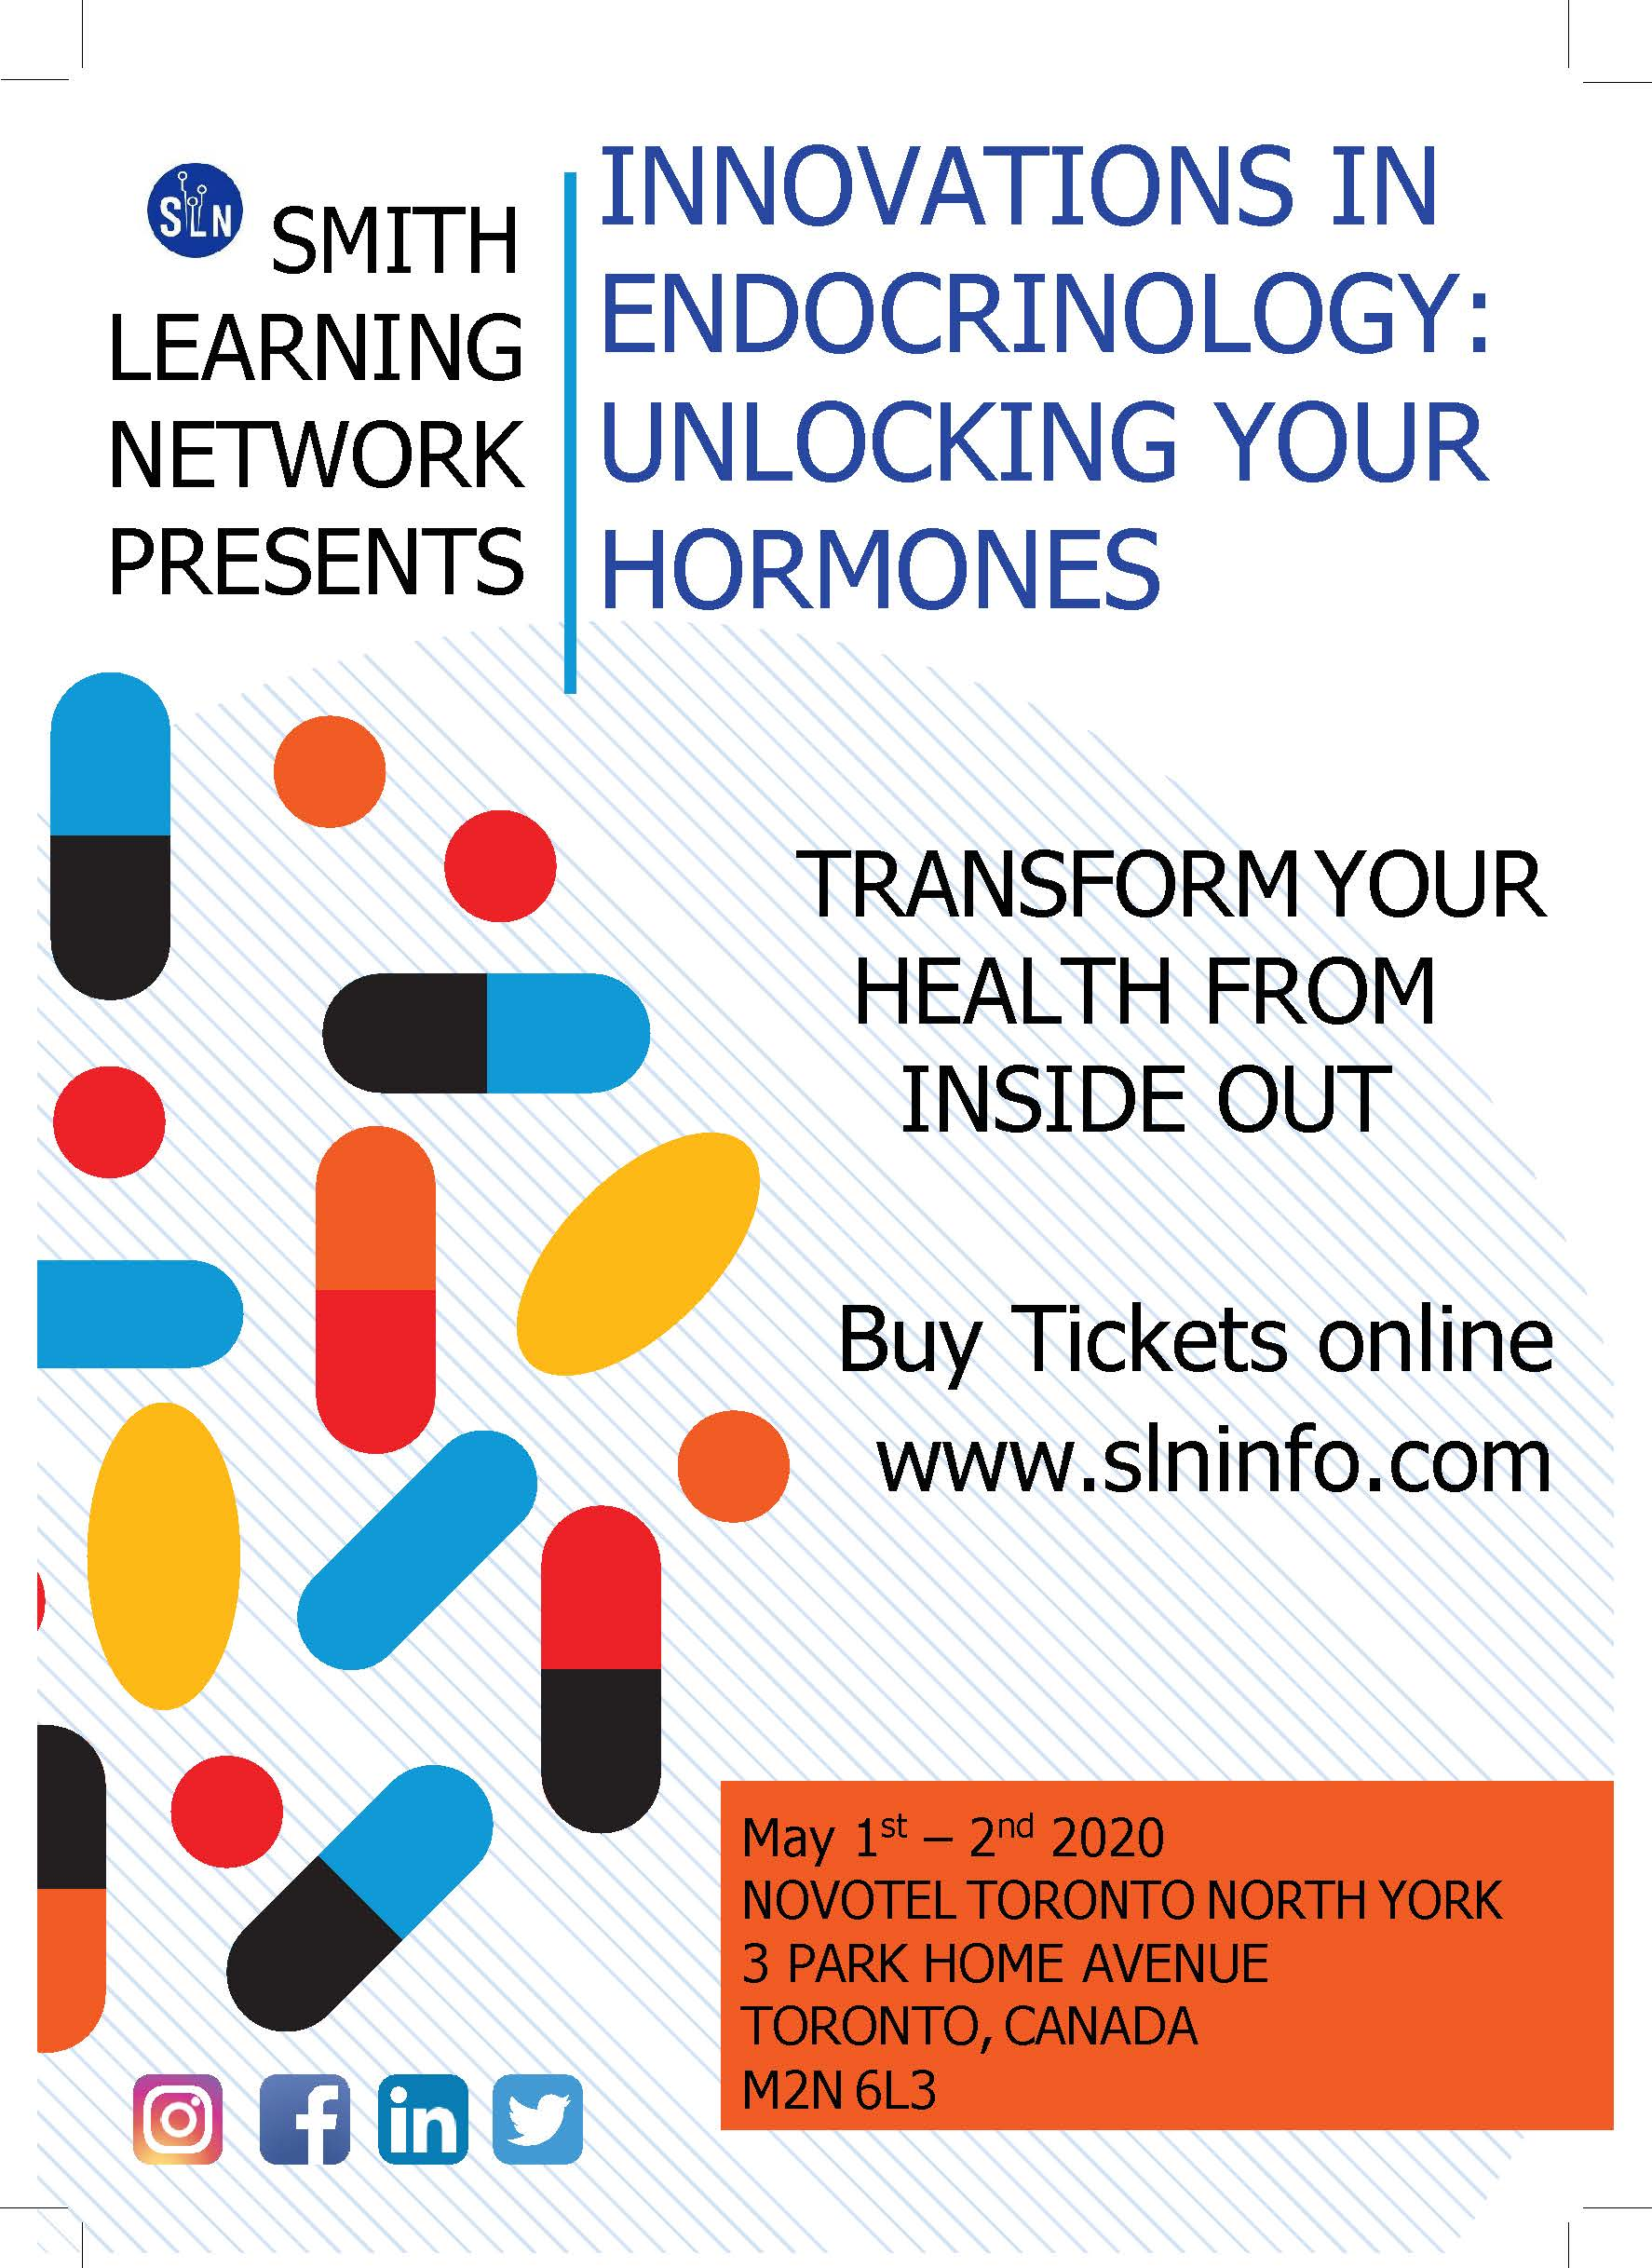 PUBLIC EVENT INNOVATIONS IN ENDOCRINOLOGY: UNLOCKING YOUR HORMONES